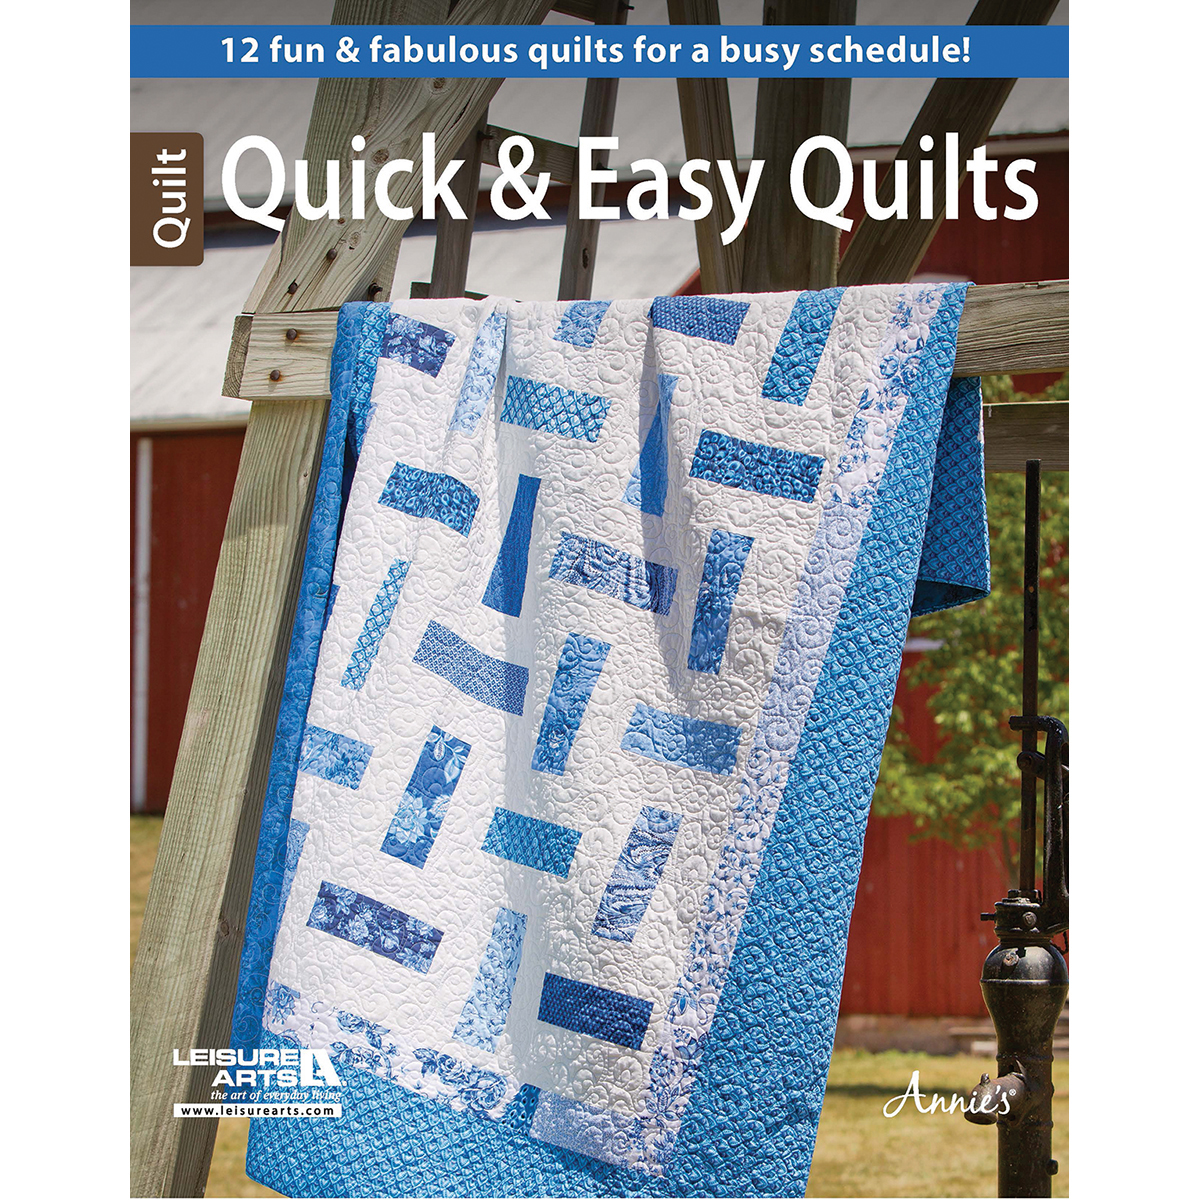 Leisure Arts-Quick & Easy Quilts